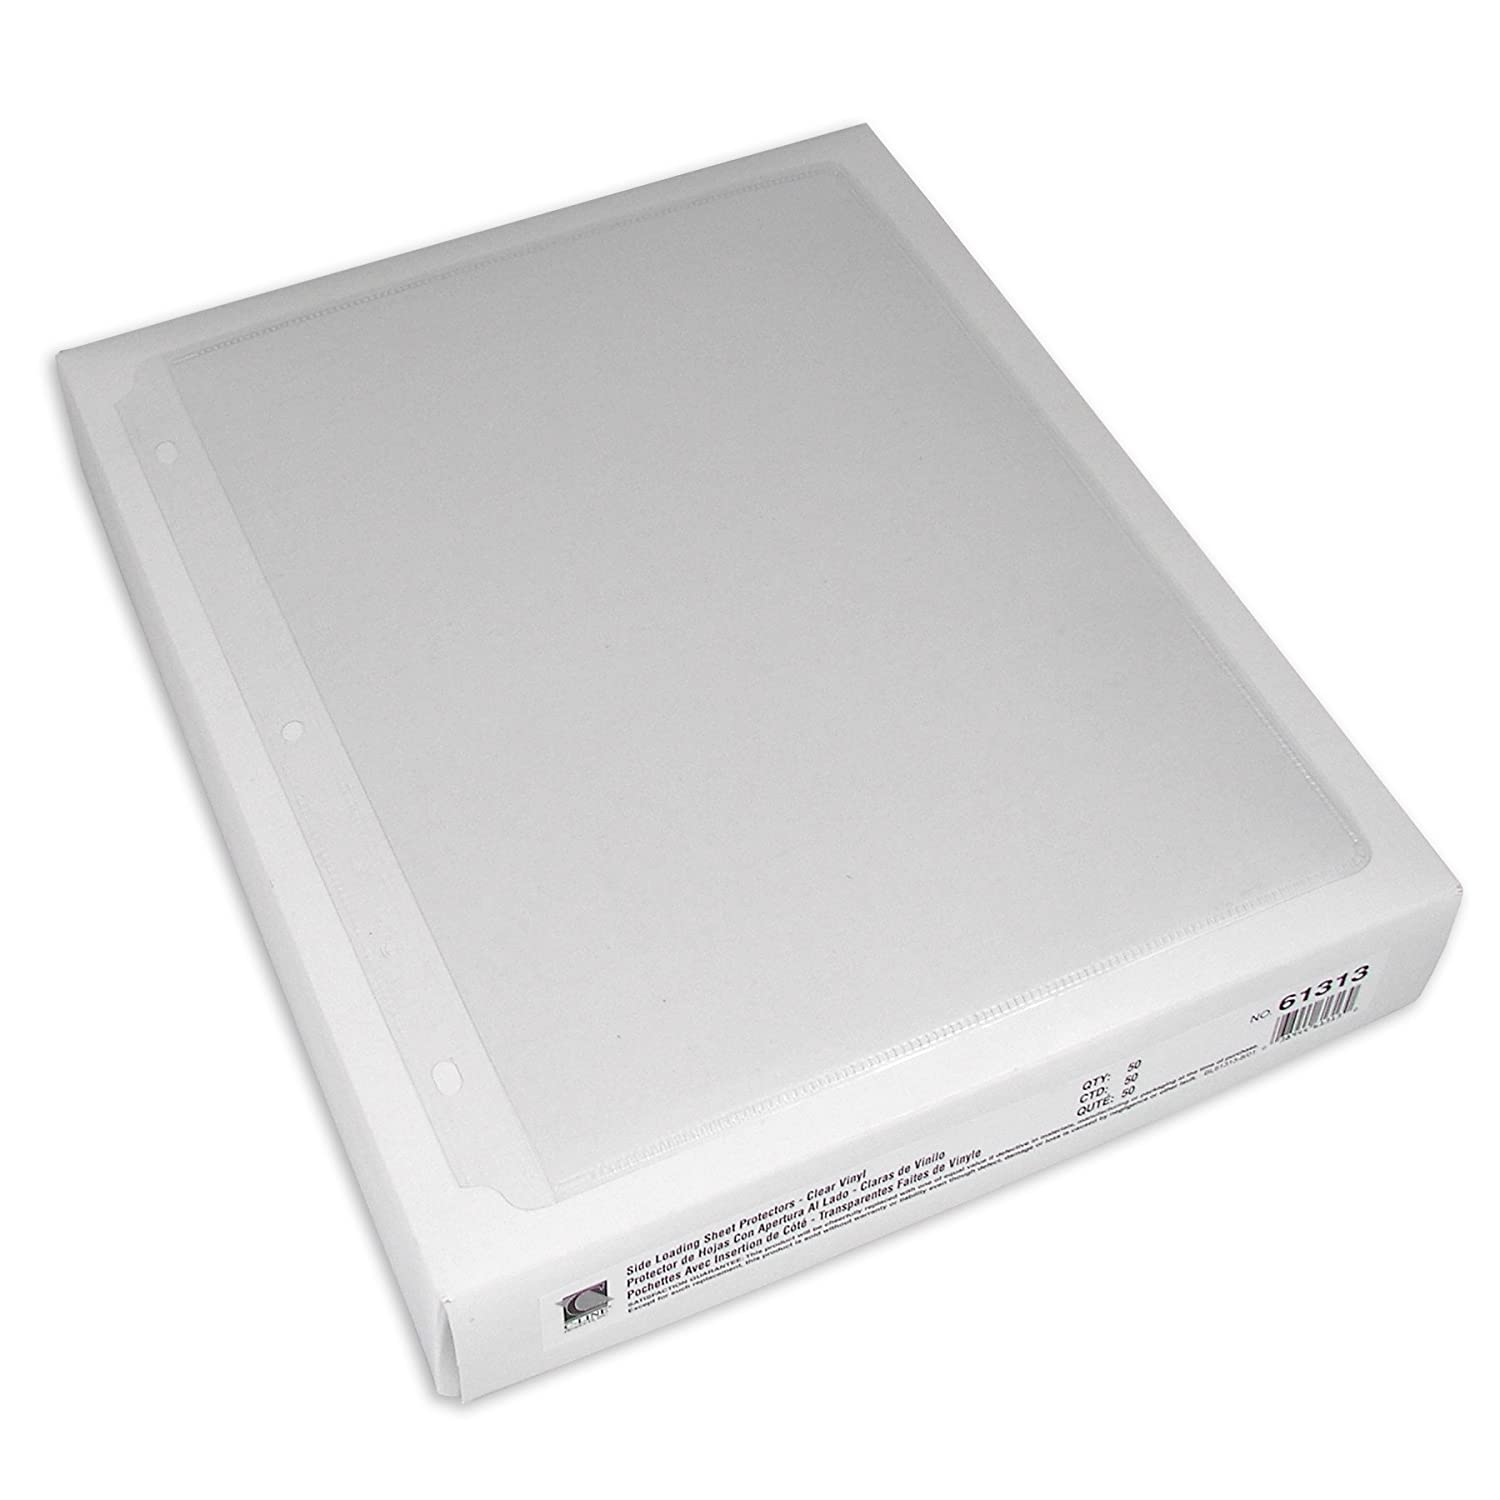 50//Box Sealed on 3 Sides C-Line 62313 Side-Loading Clear Heavy-Gauge Poly Sheet Protectors